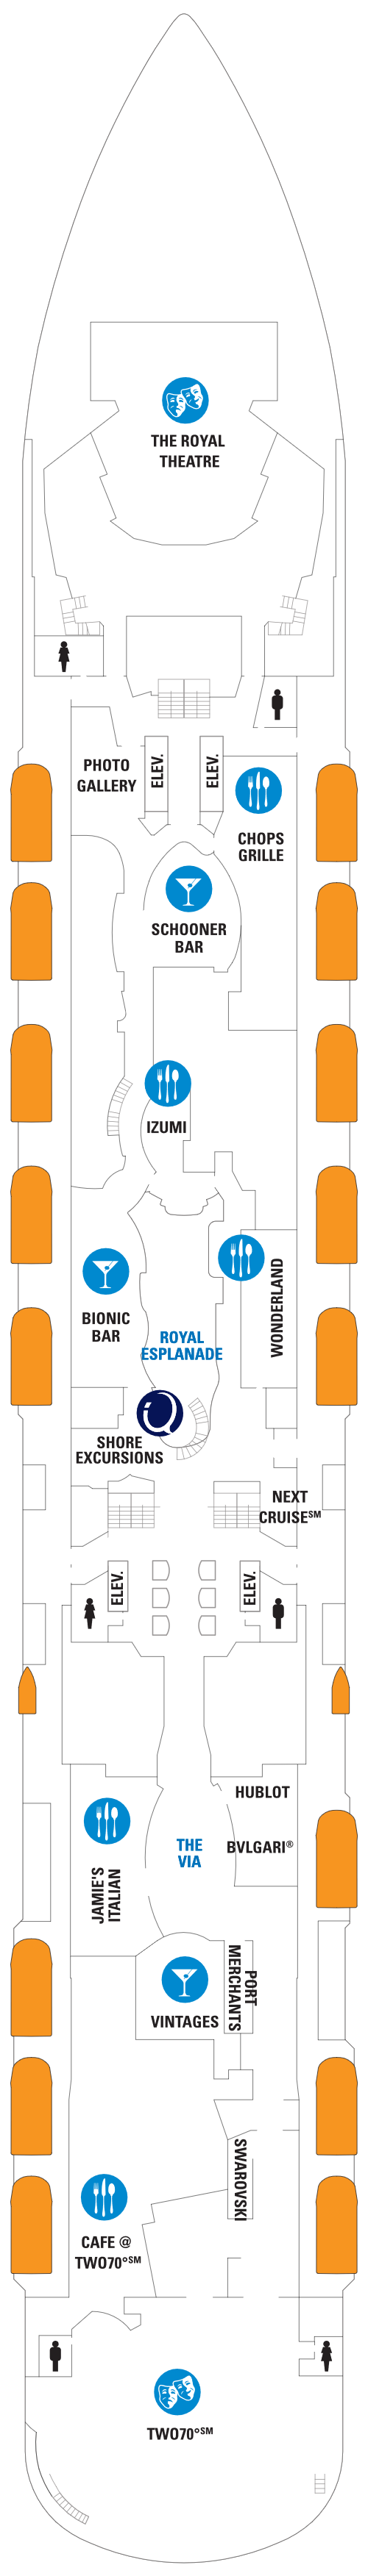 Quantum Of The Seas Deck 5 layout